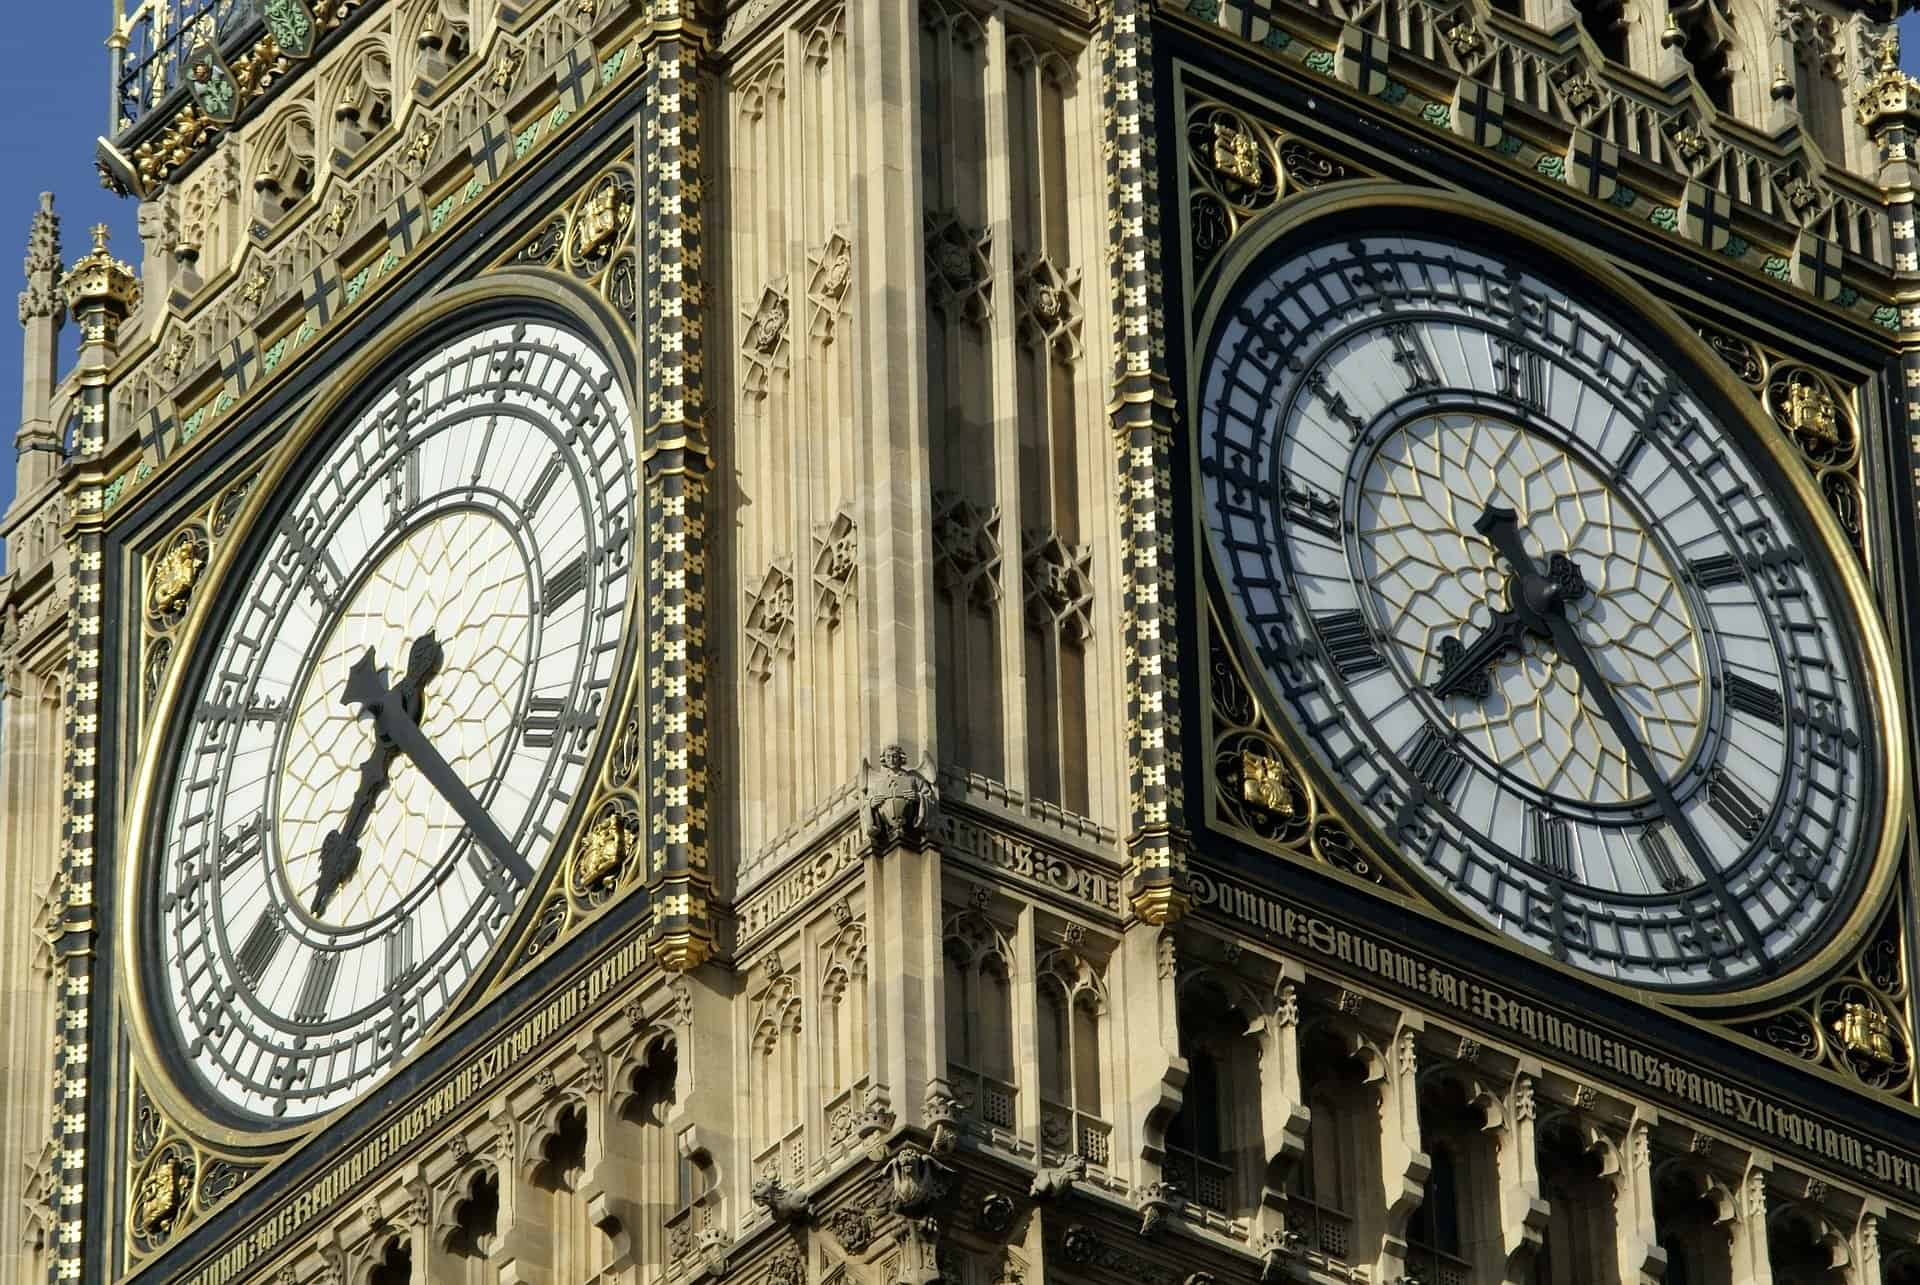 The Elizabeth clock tower, home of big ben